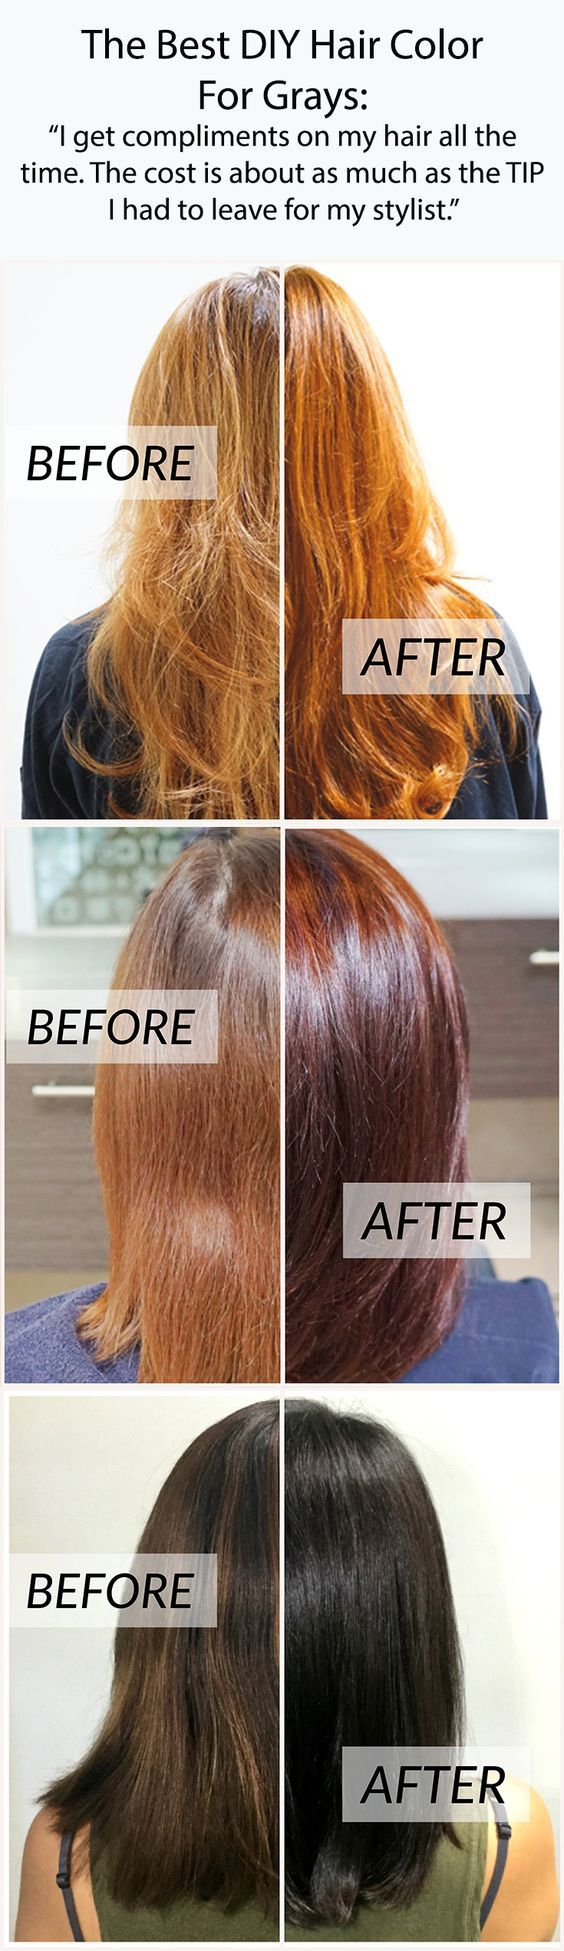 Rethink Your Hair Color Routine It